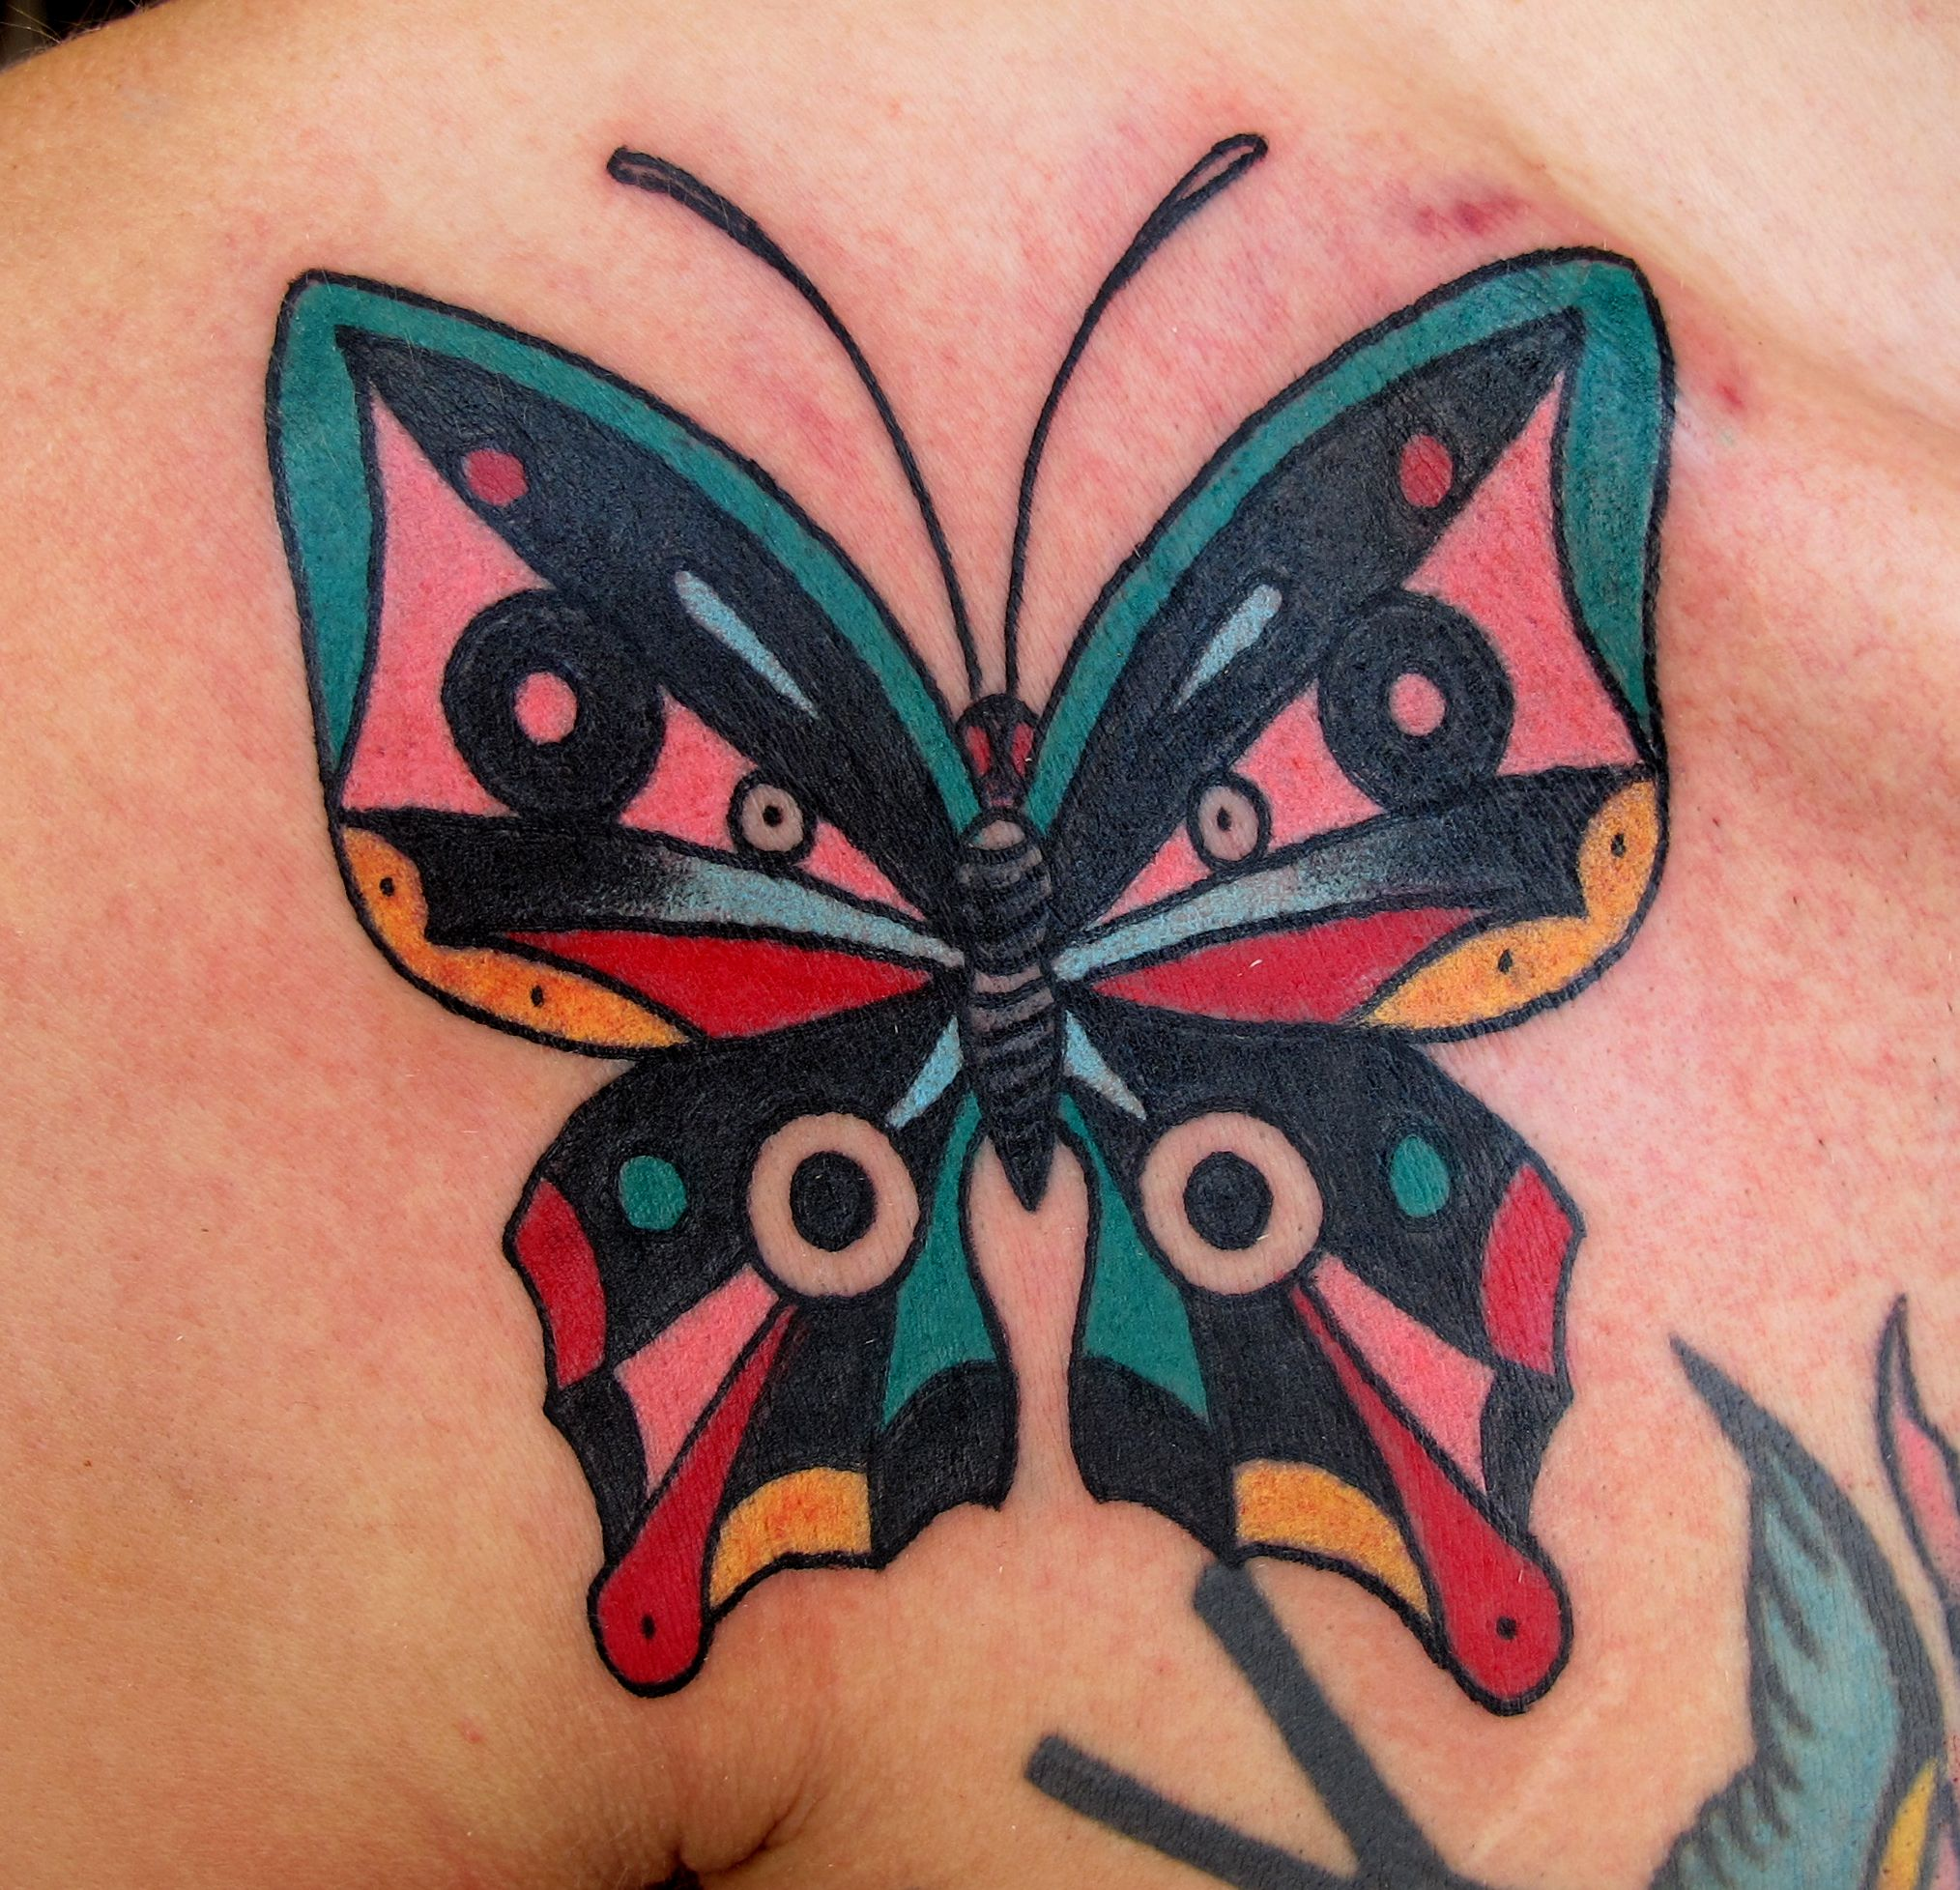 Solid Black Butterfly Tattoo This butterfly is adding on ... - photo#6